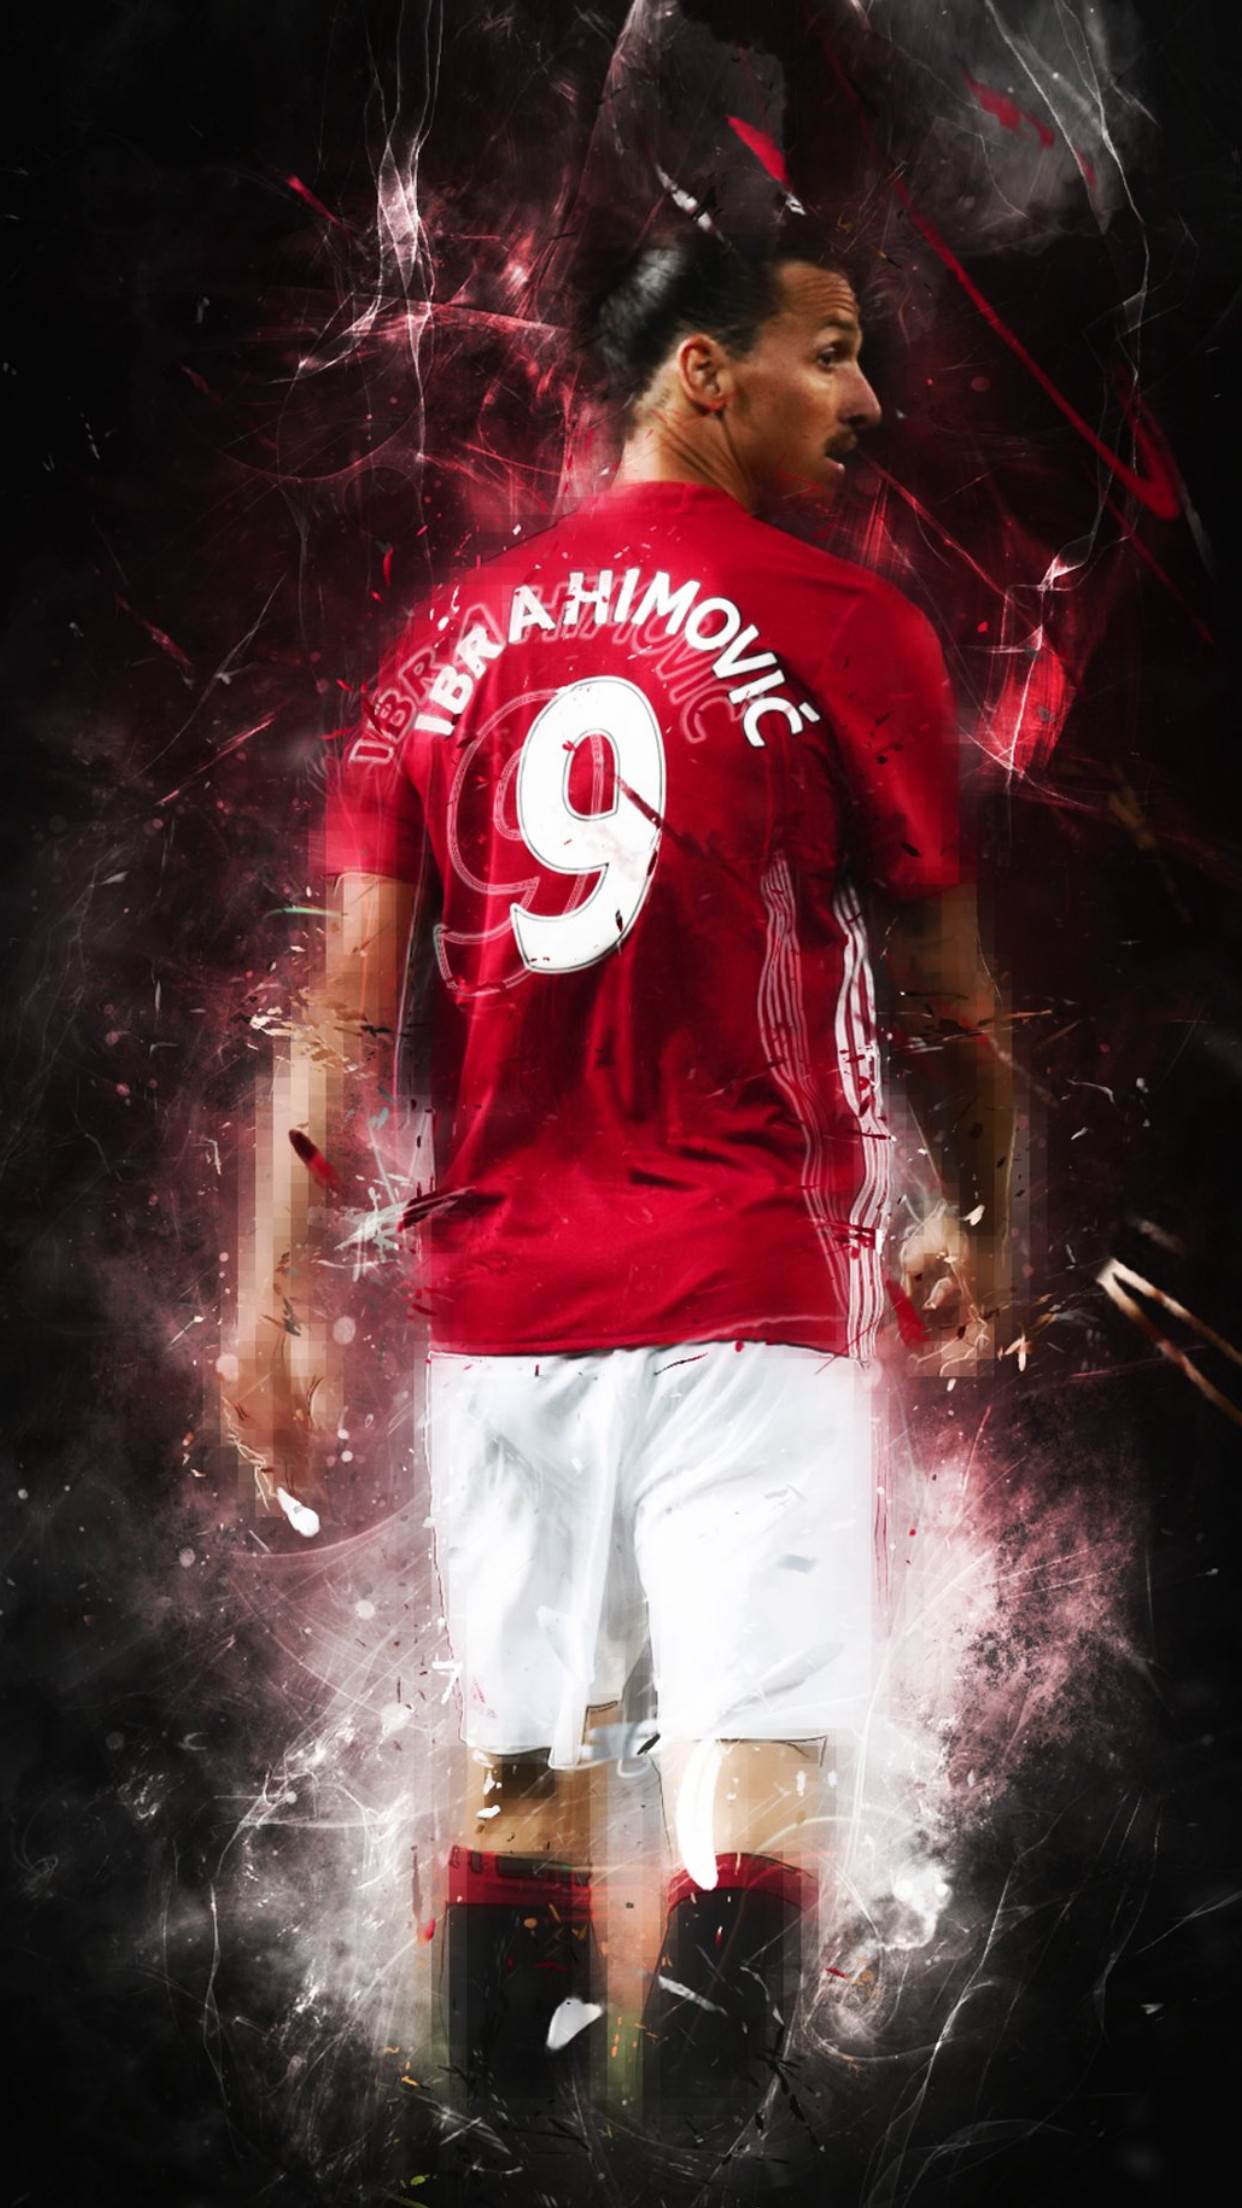 Manchester United iPhone Wallpaper 66 images 1242x2208